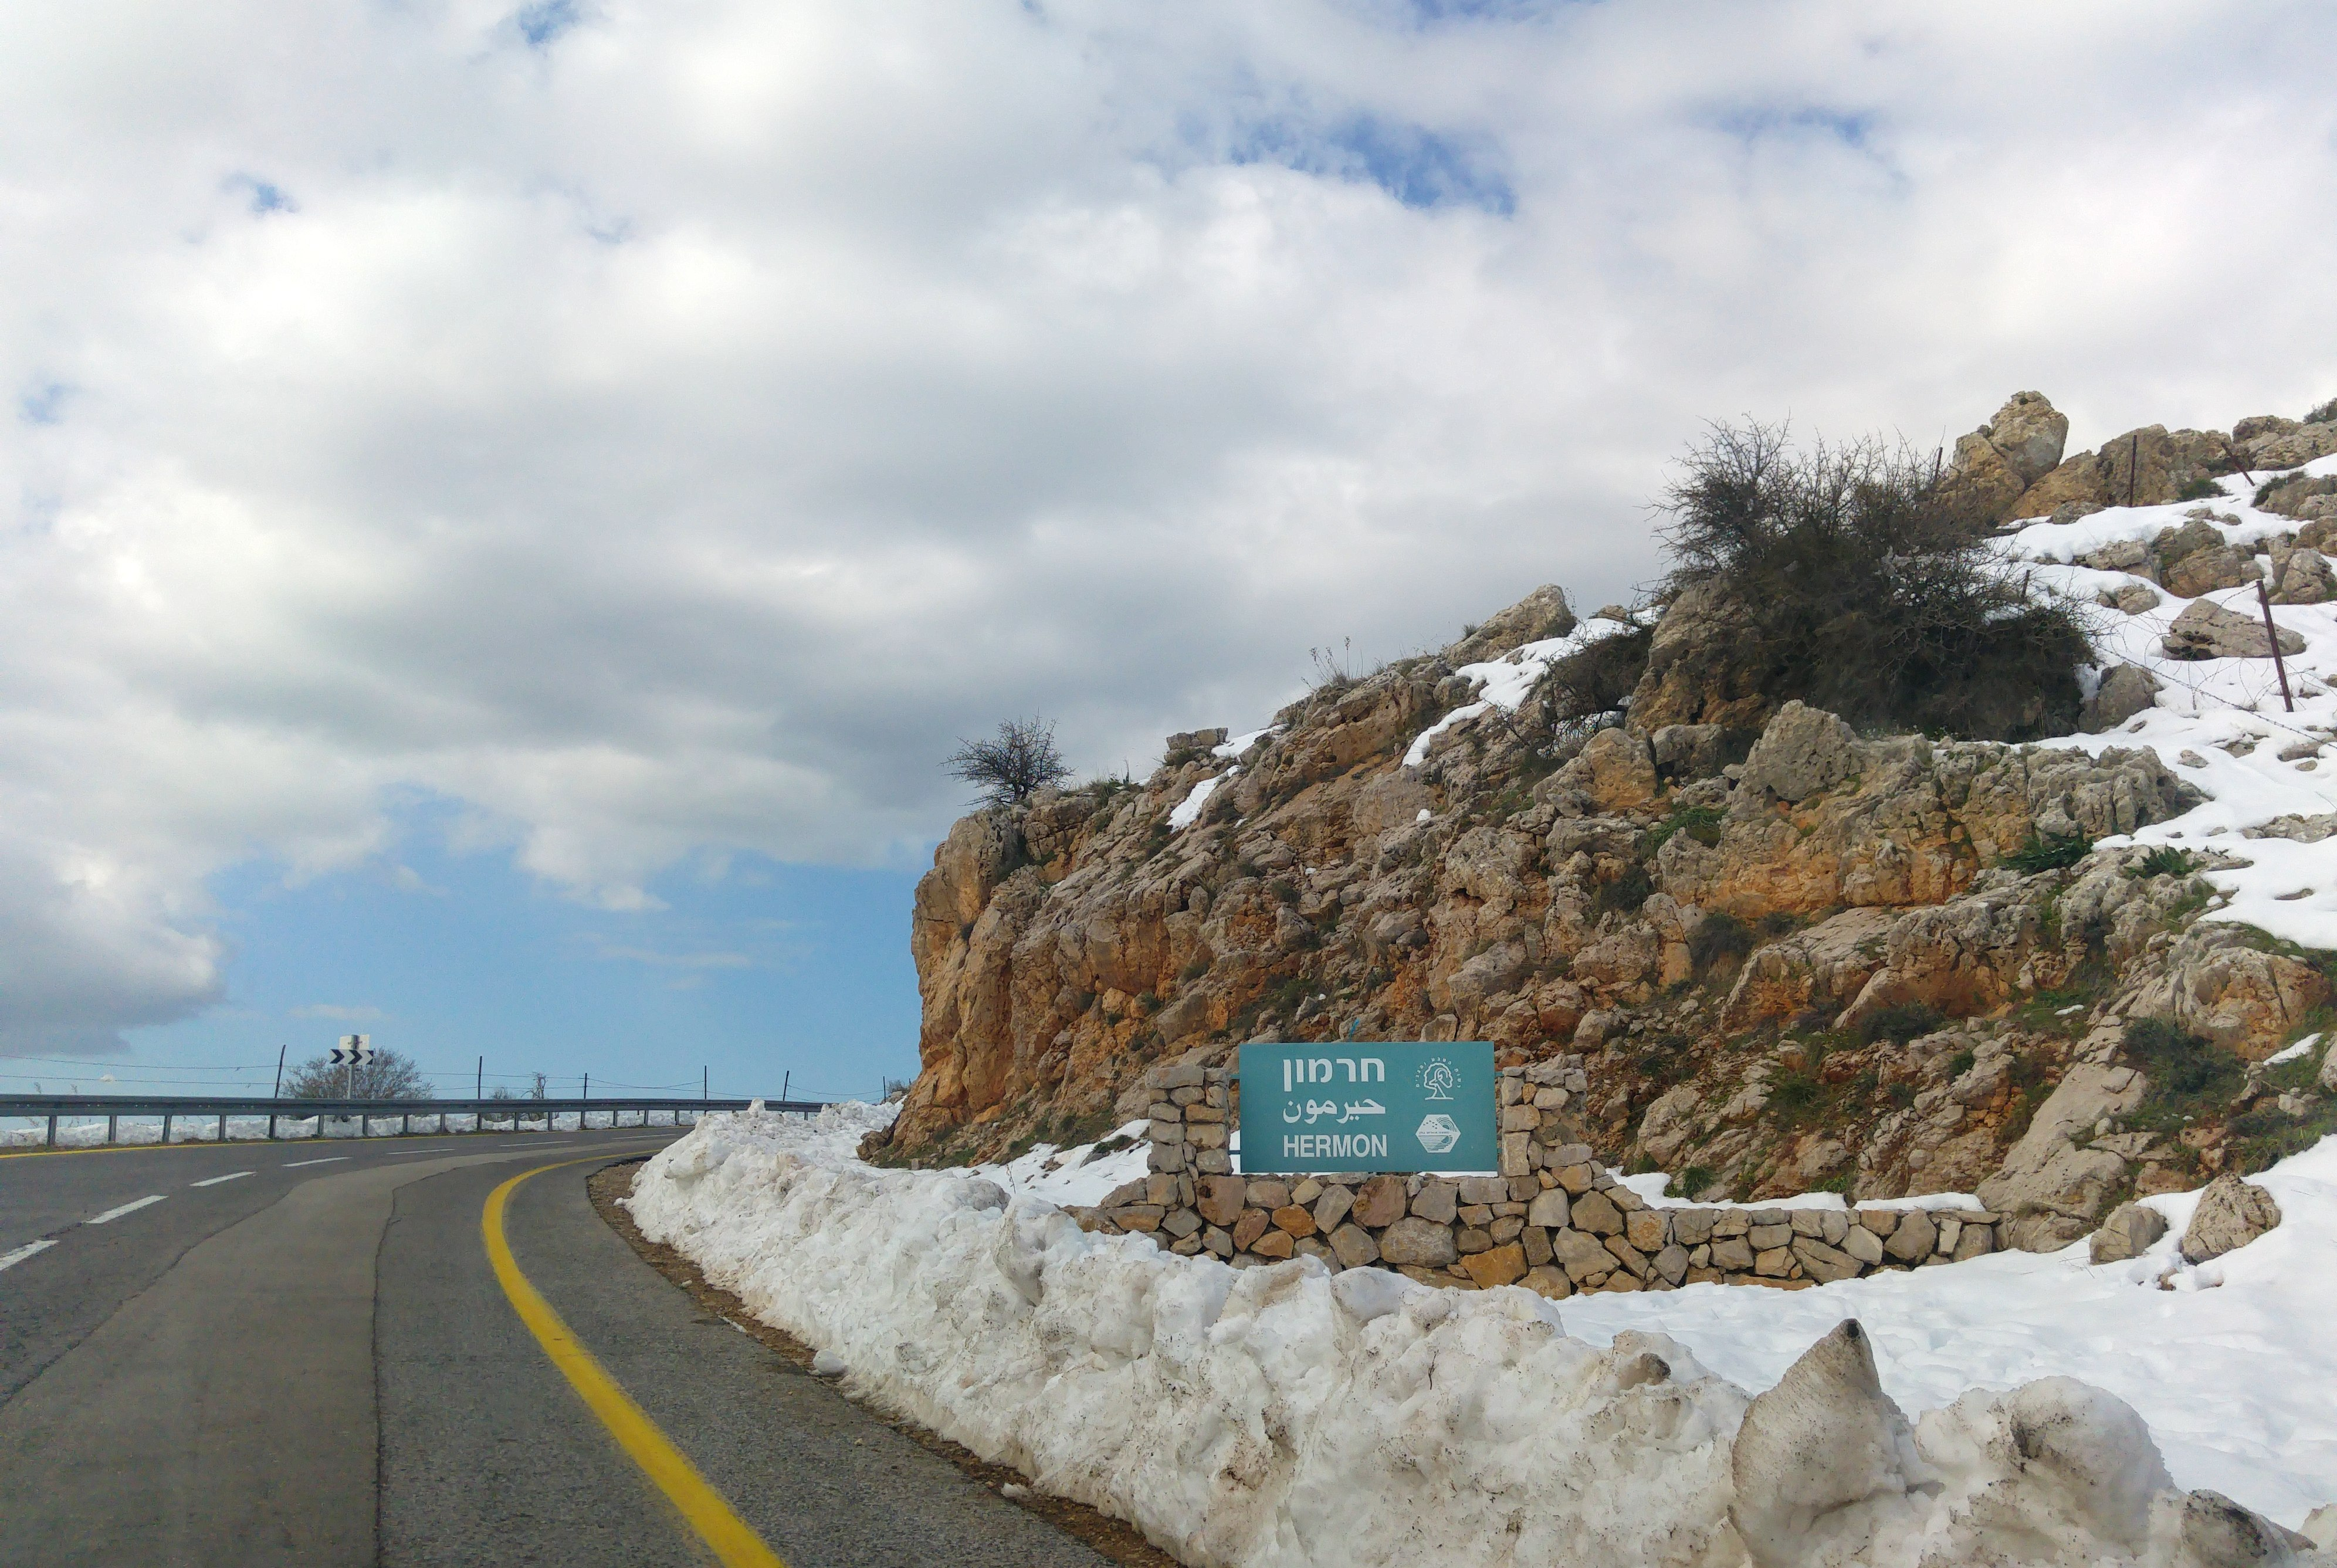 Welcome to Mount Hermon